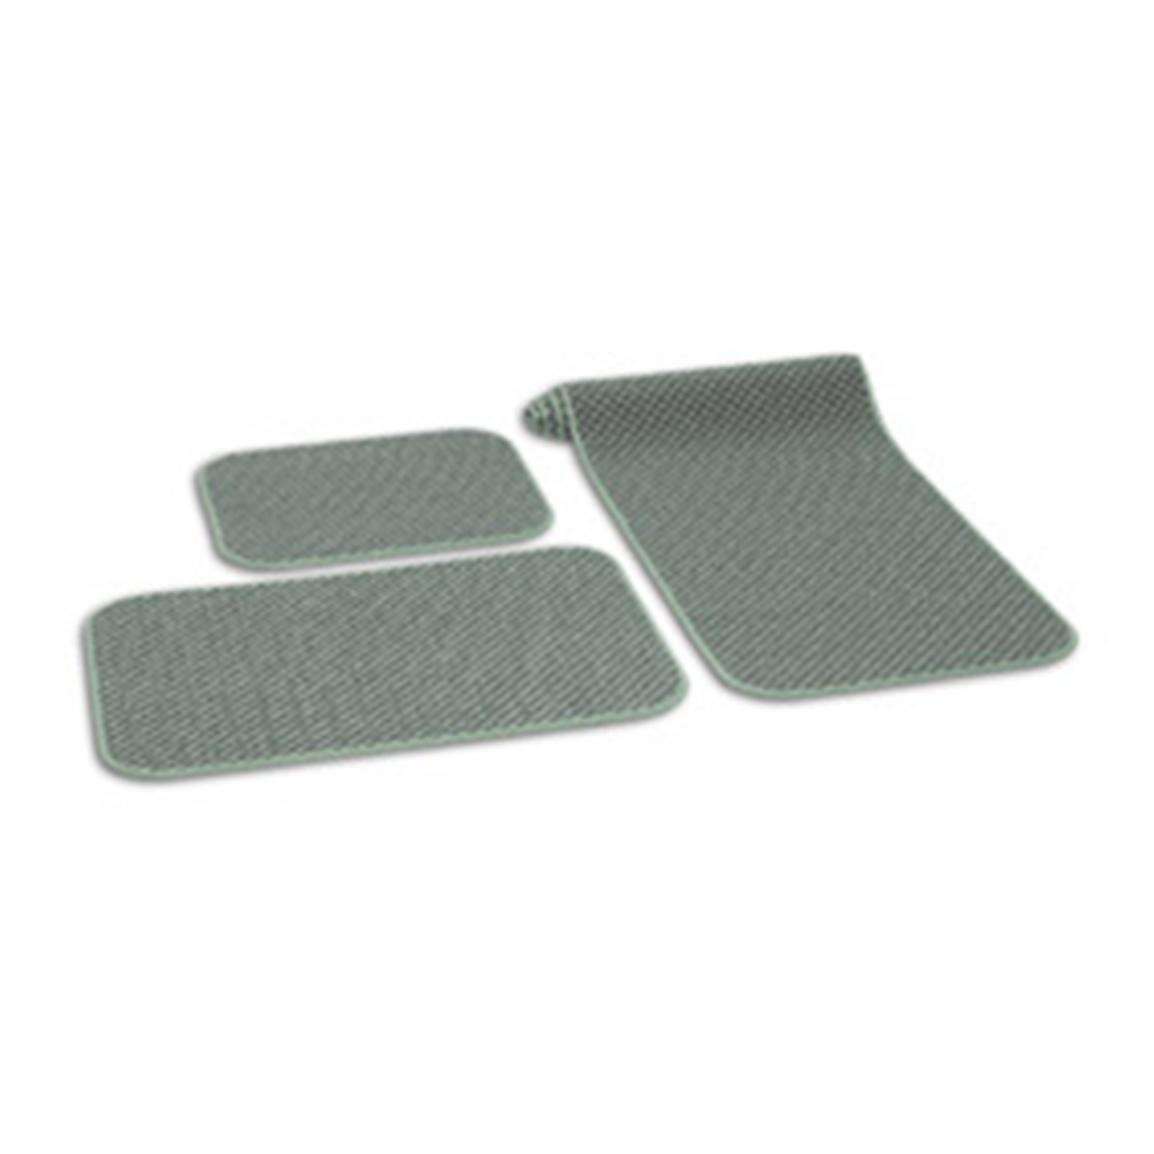 3-Pc. Interior RV Rug Set, Style A